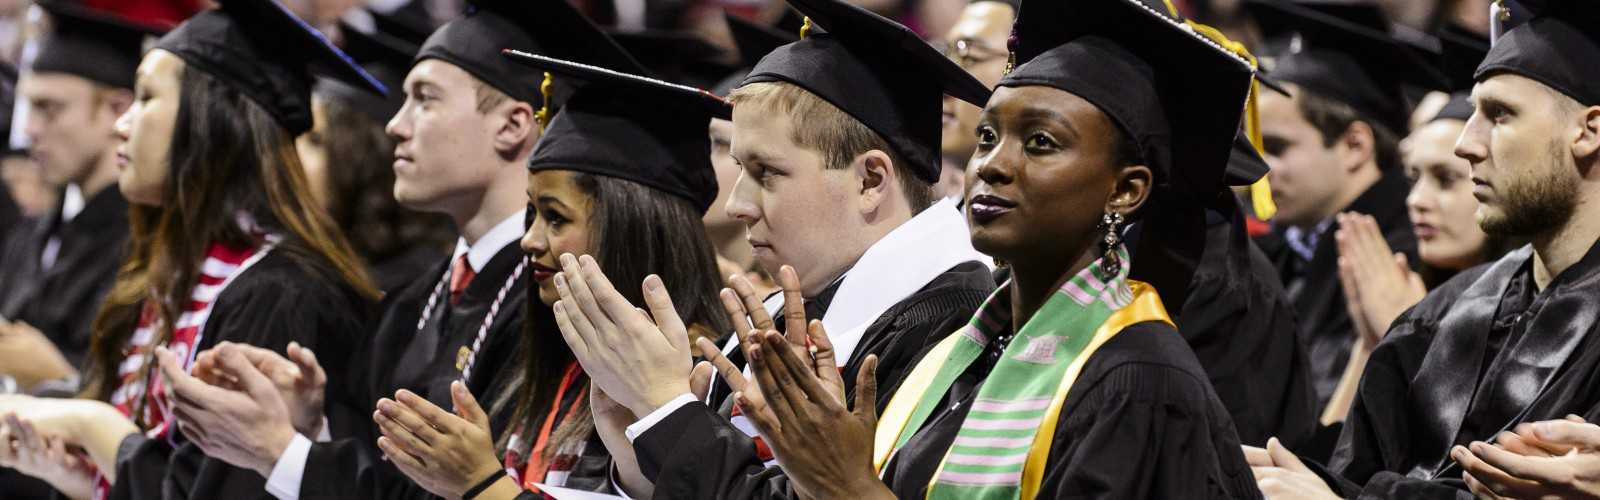 Graduates applaud a speaker during UW-Madison's winter commencement ceremony at the Kohl Center at the University of Wisconsin-Madison on Dec. 20, 2015. The indoor graduation was attended by approximately 1,200 bachelor's and master's degree candidates, plus their guests. (Photo by Jeff Miller/UW-Madison)